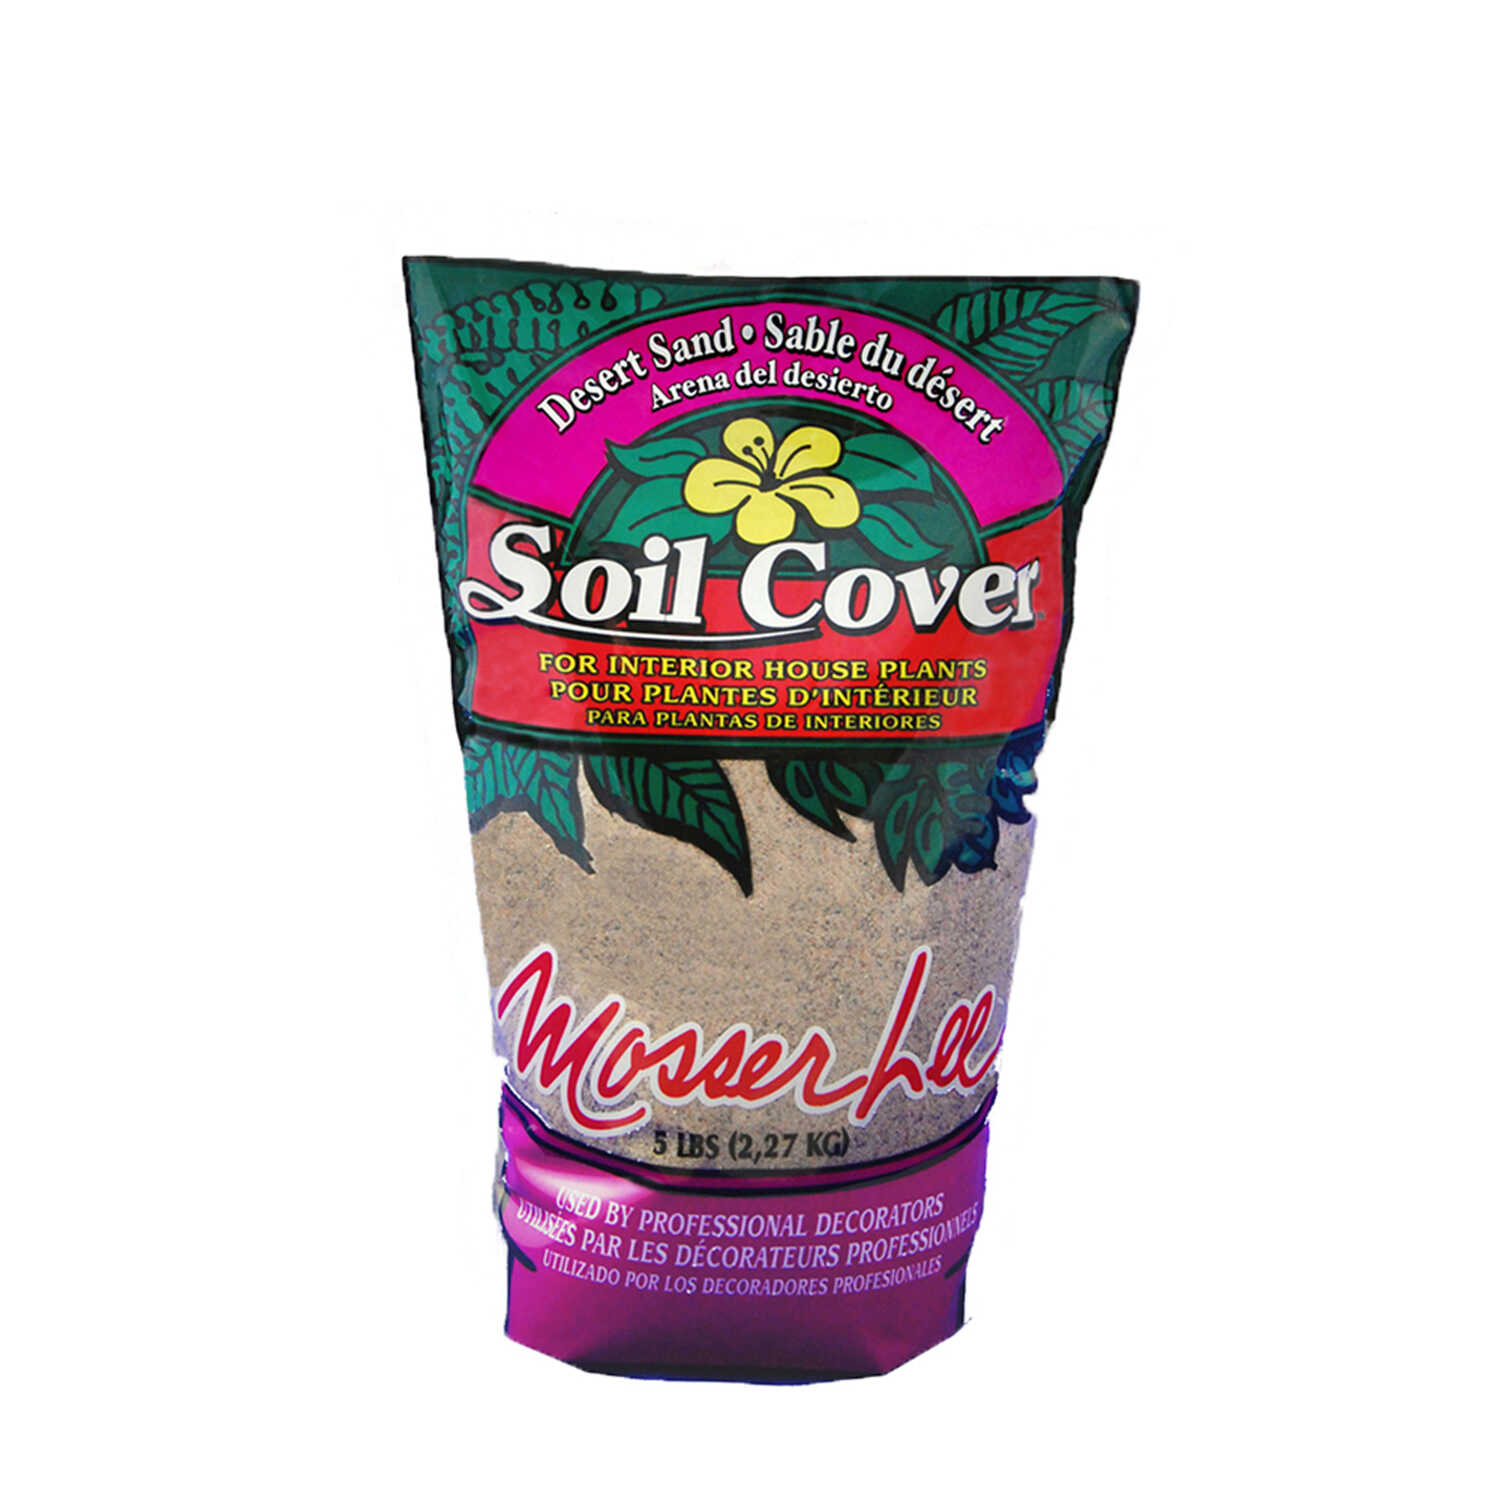 Mosser Lee  Soil Cover  Gold  Desert Sand